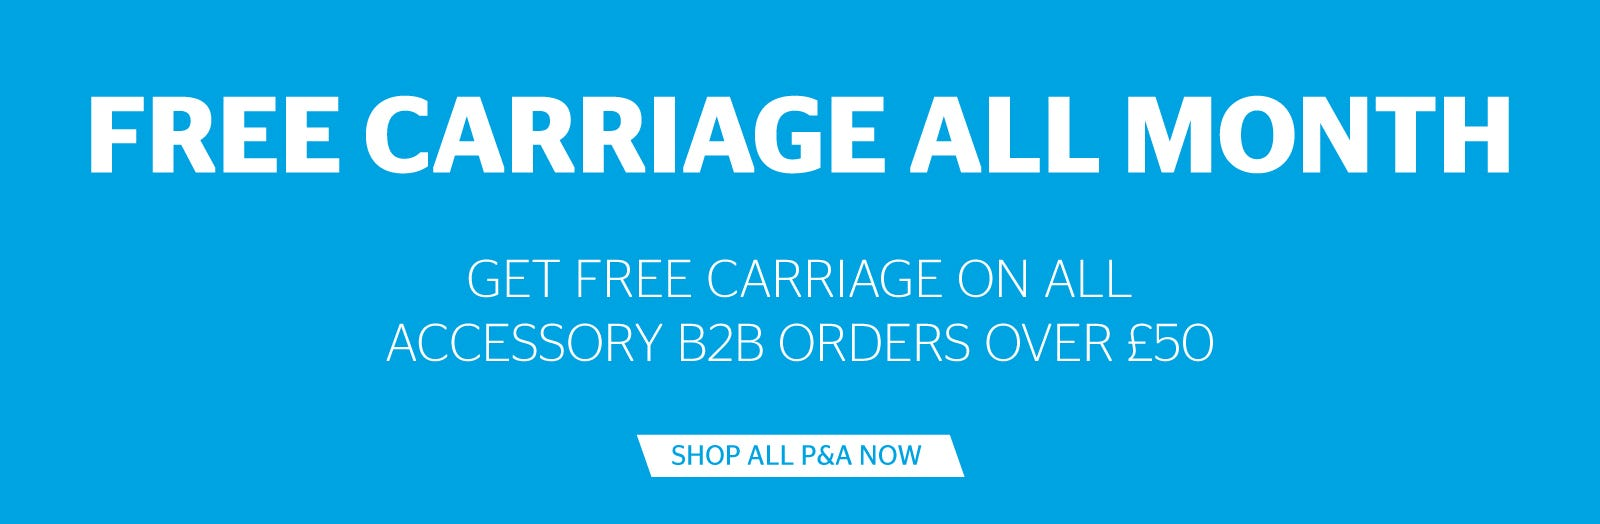 January | Free Carriage Over £50